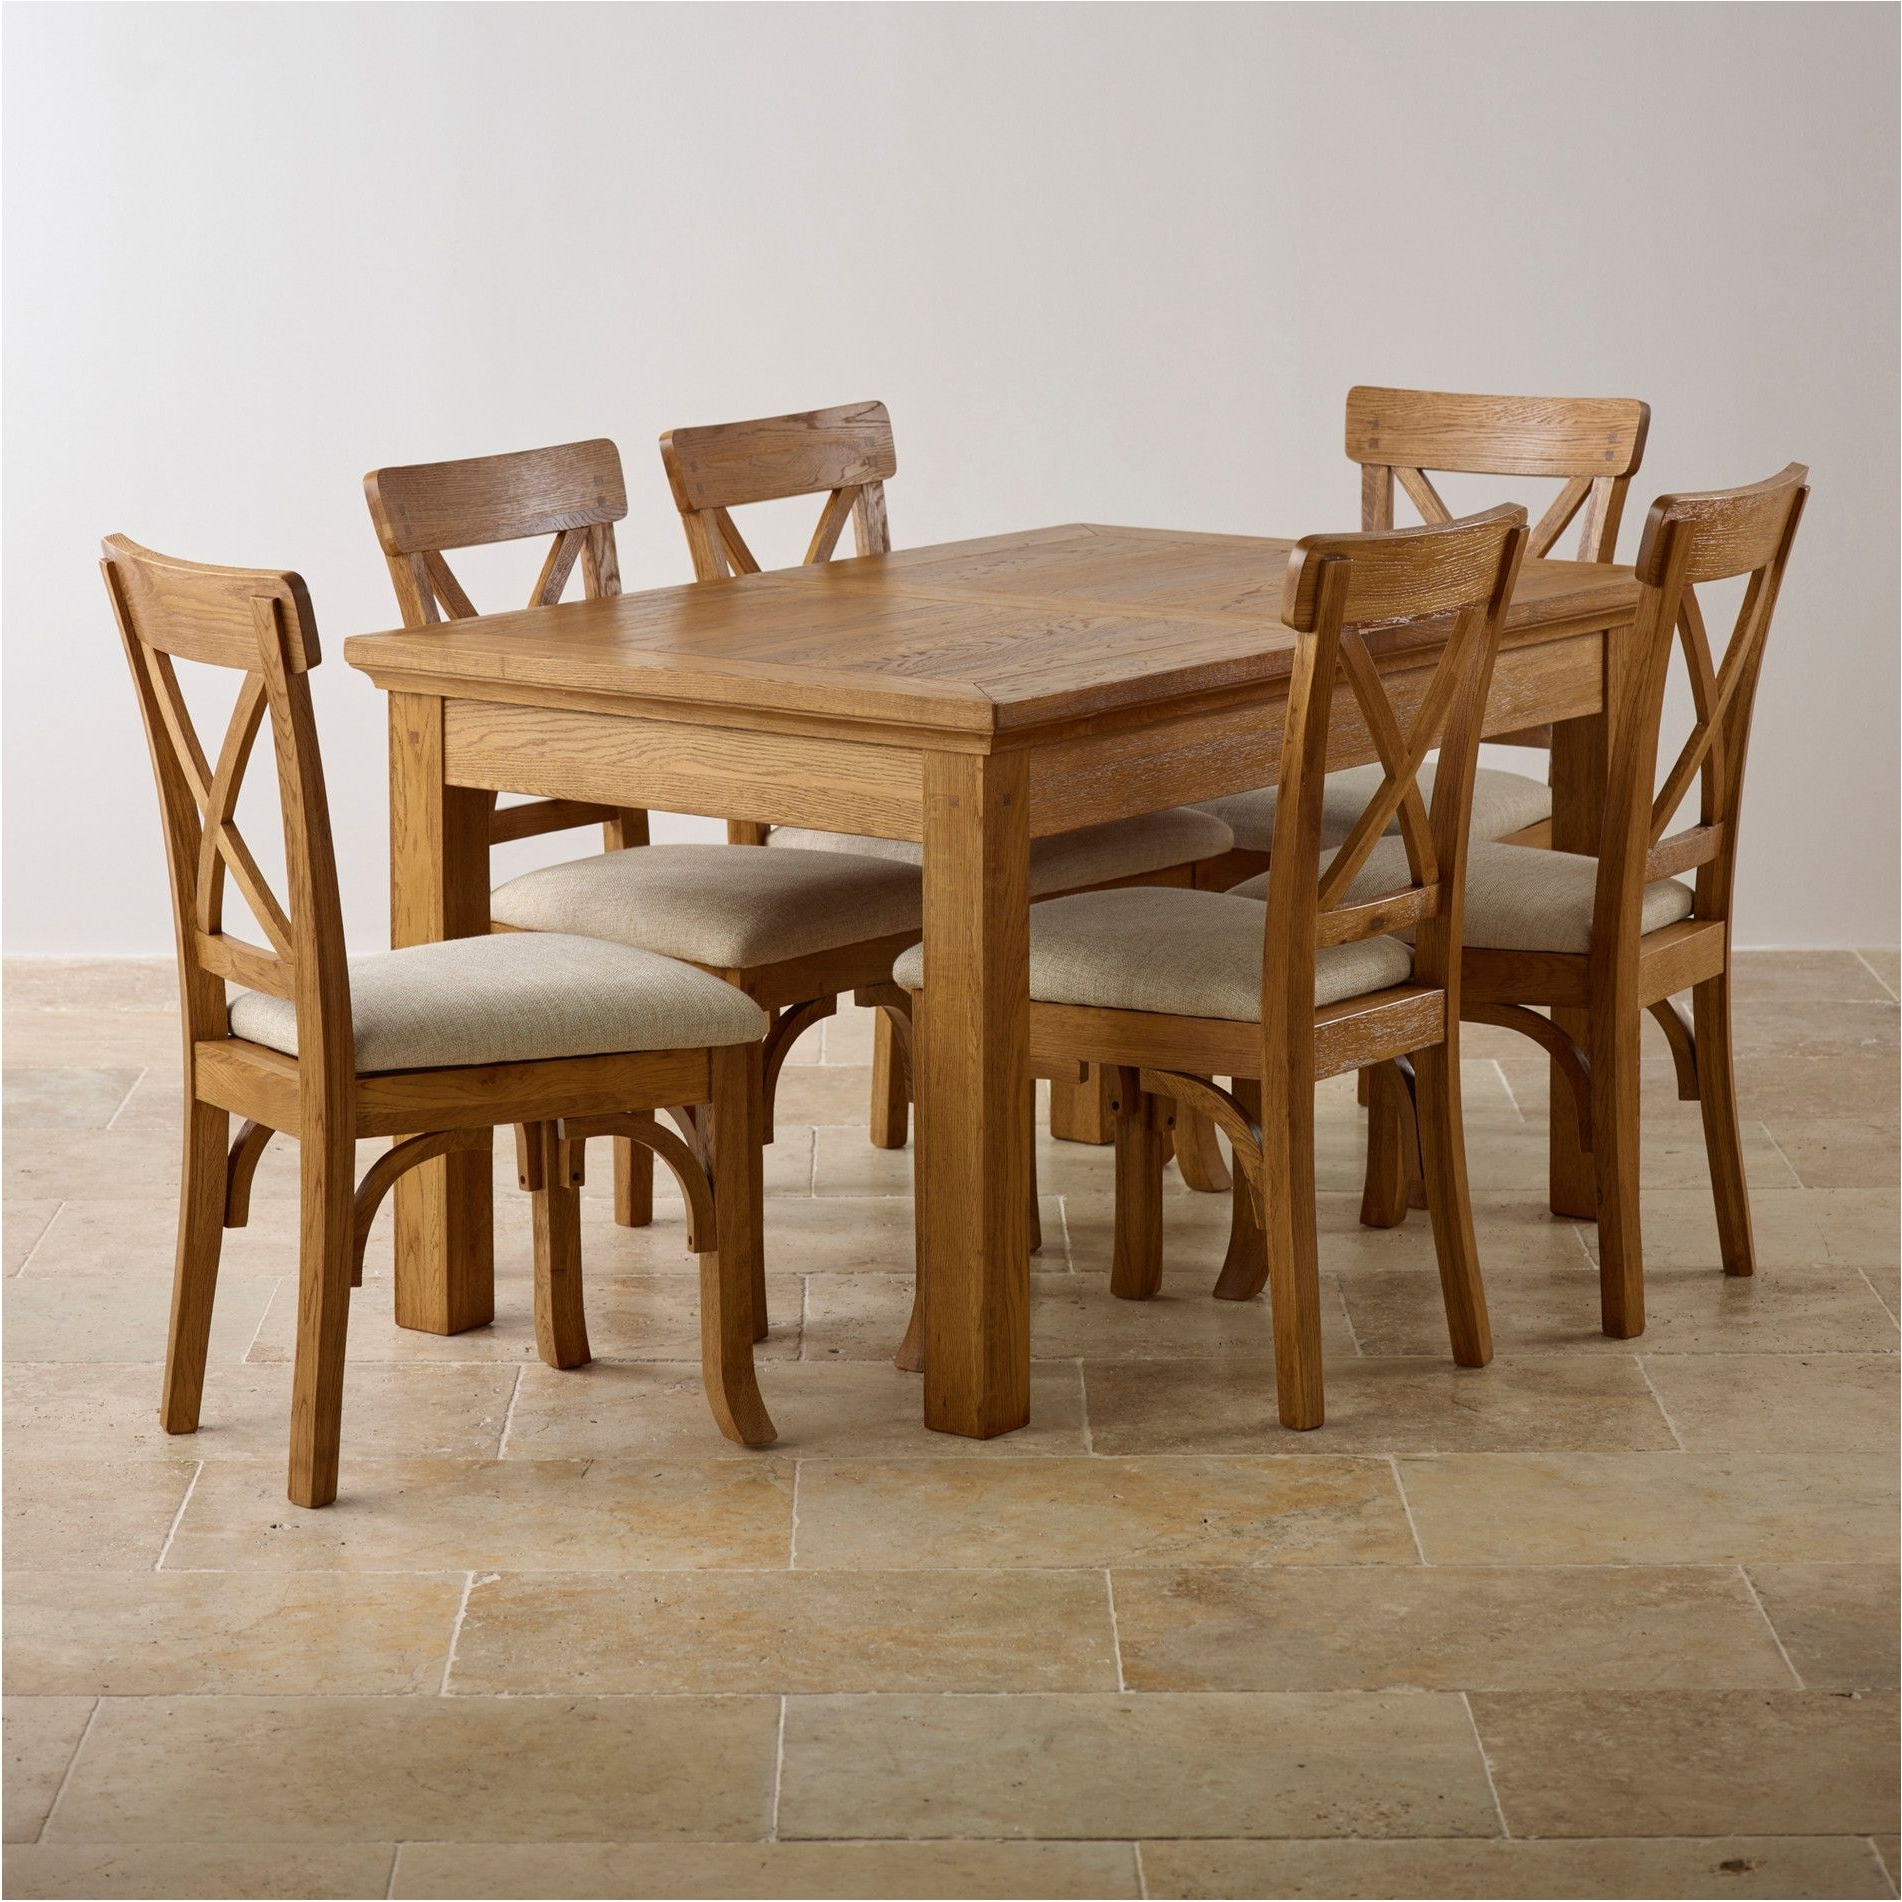 Light Oak Dining Tables And 6 Chairs Within 2018 Nice Excellent Oak Dining Table Set 6 Room And Chairs Be Black (View 11 of 25)